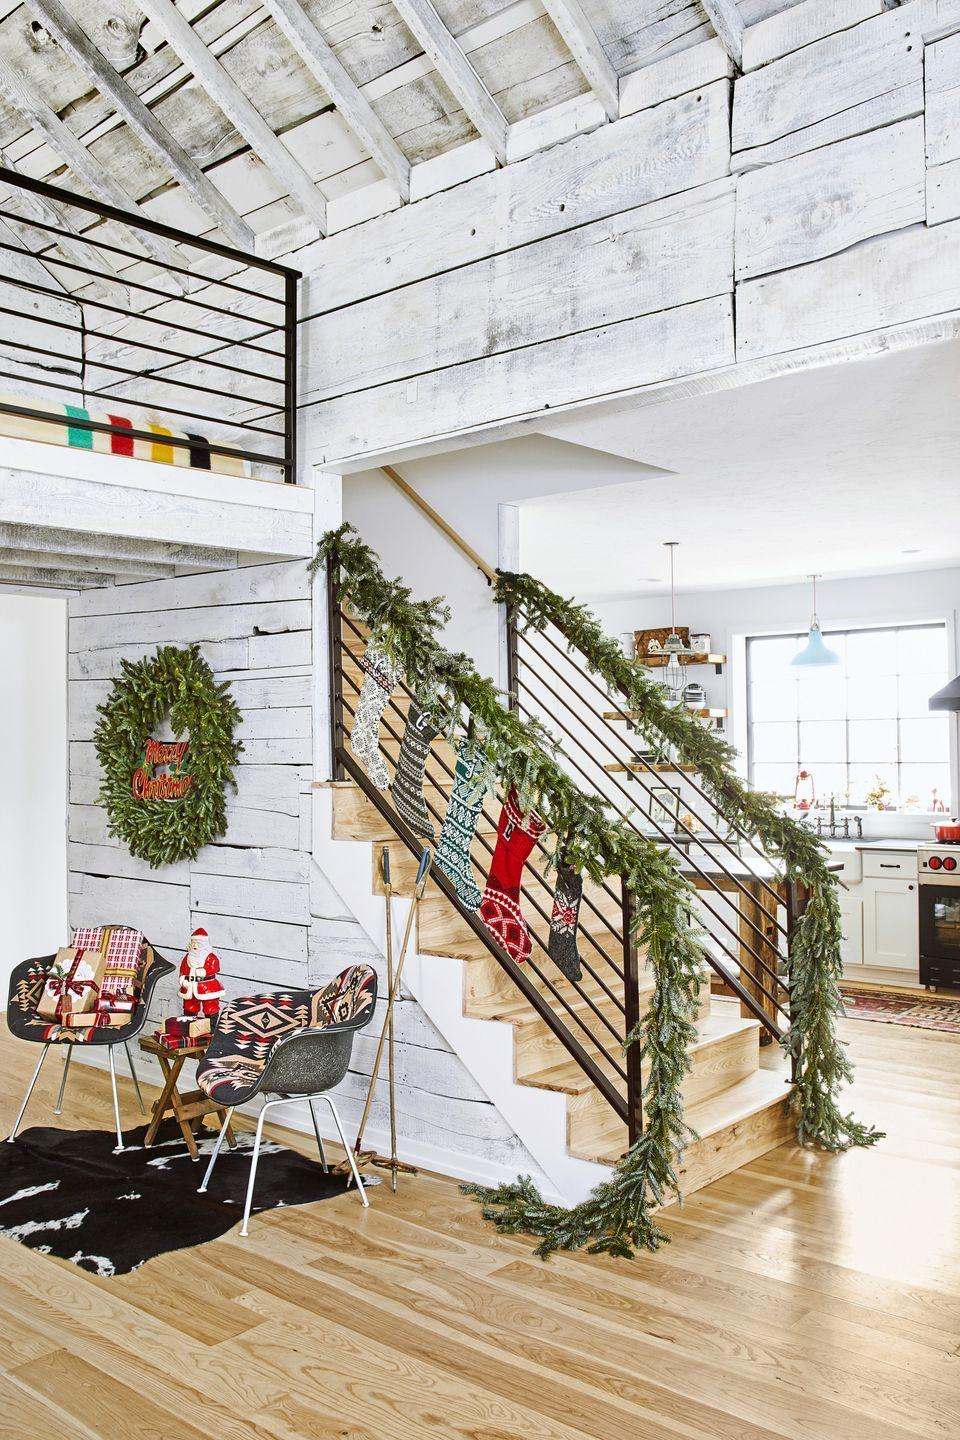 """<p>Every corner of this <a href=""""https://www.countryliving.com/home-design/house-tours/g25472073/chirstmas-decorating-michigan-farmhouse/"""" rel=""""nofollow noopener"""" target=""""_blank"""" data-ylk=""""slk:Michigan home"""" class=""""link rapid-noclick-resp"""">Michigan home</a>, owned by Christine and Gabe Bridger, is decked to the nines. That includes the staircase: Stockings and a garland keep it feeling fun and festive.</p><p><a class=""""link rapid-noclick-resp"""" href=""""https://www.amazon.com/wreaths-garlands/b?ie=UTF8&node=13679411&tag=syn-yahoo-20&ascsubtag=%5Bartid%7C10050.g.1247%5Bsrc%7Cyahoo-us"""" rel=""""nofollow noopener"""" target=""""_blank"""" data-ylk=""""slk:SHOP WREATHS AND GARLANDS"""">SHOP WREATHS AND GARLANDS</a></p>"""